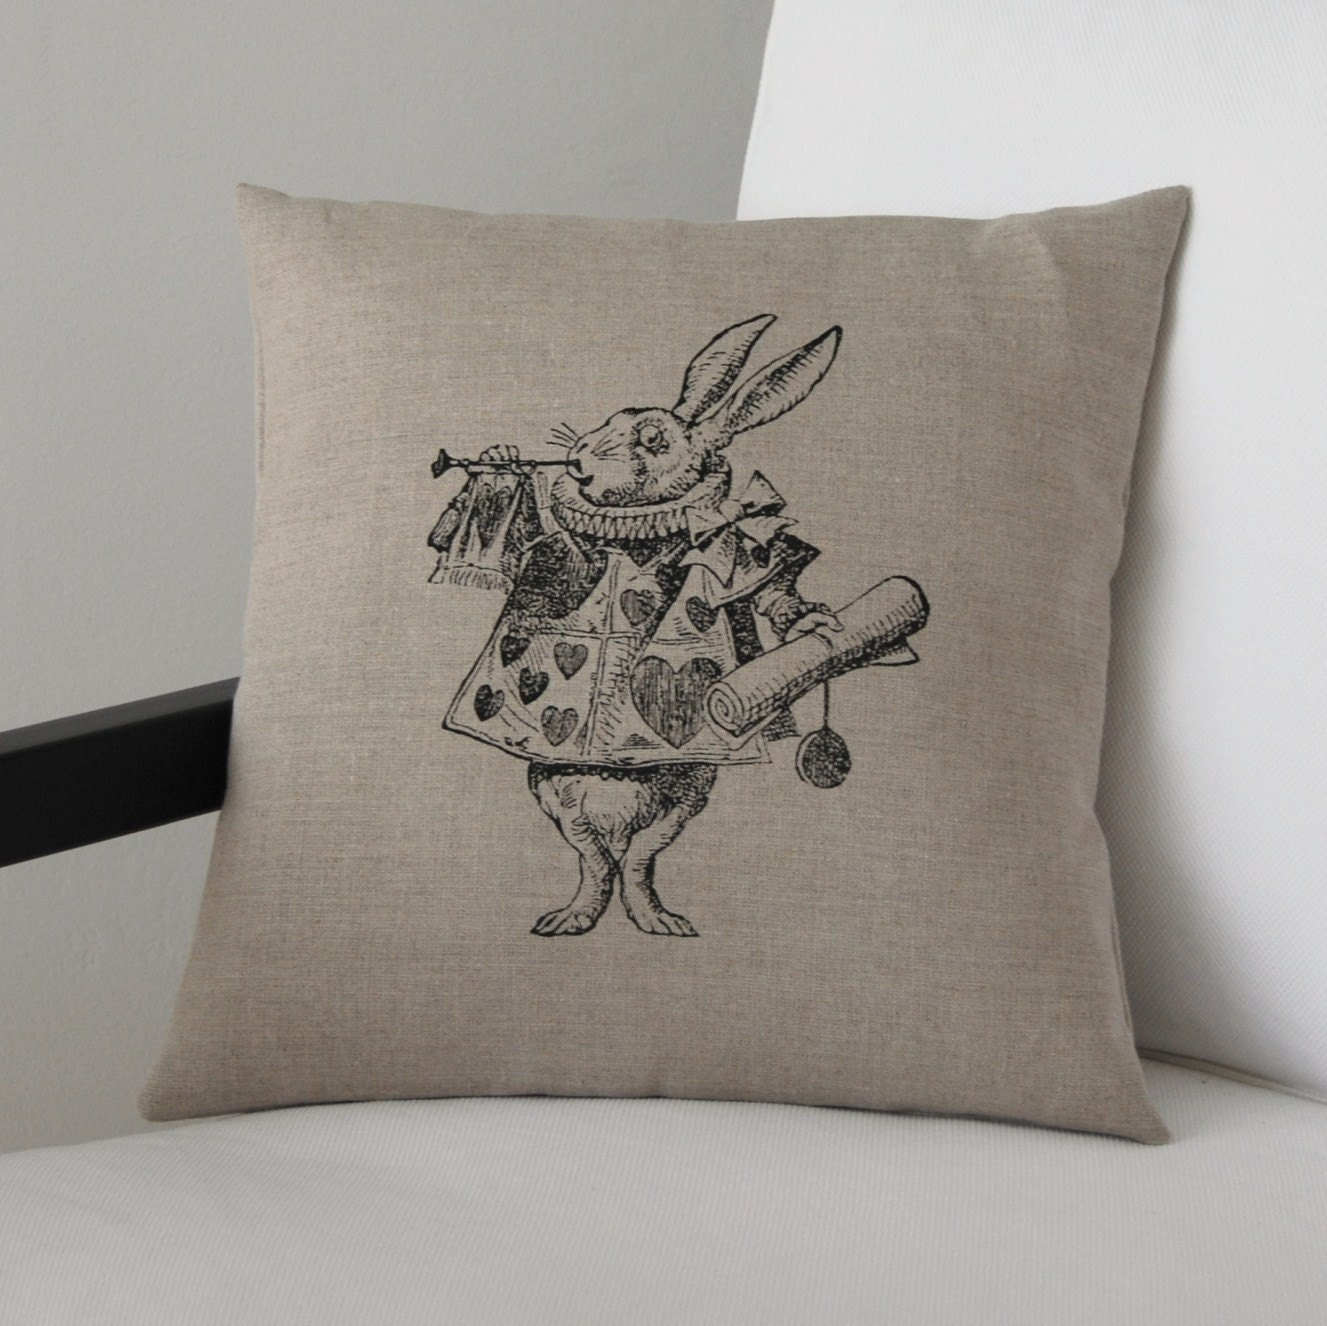 The White Rabbit Pillow Cover